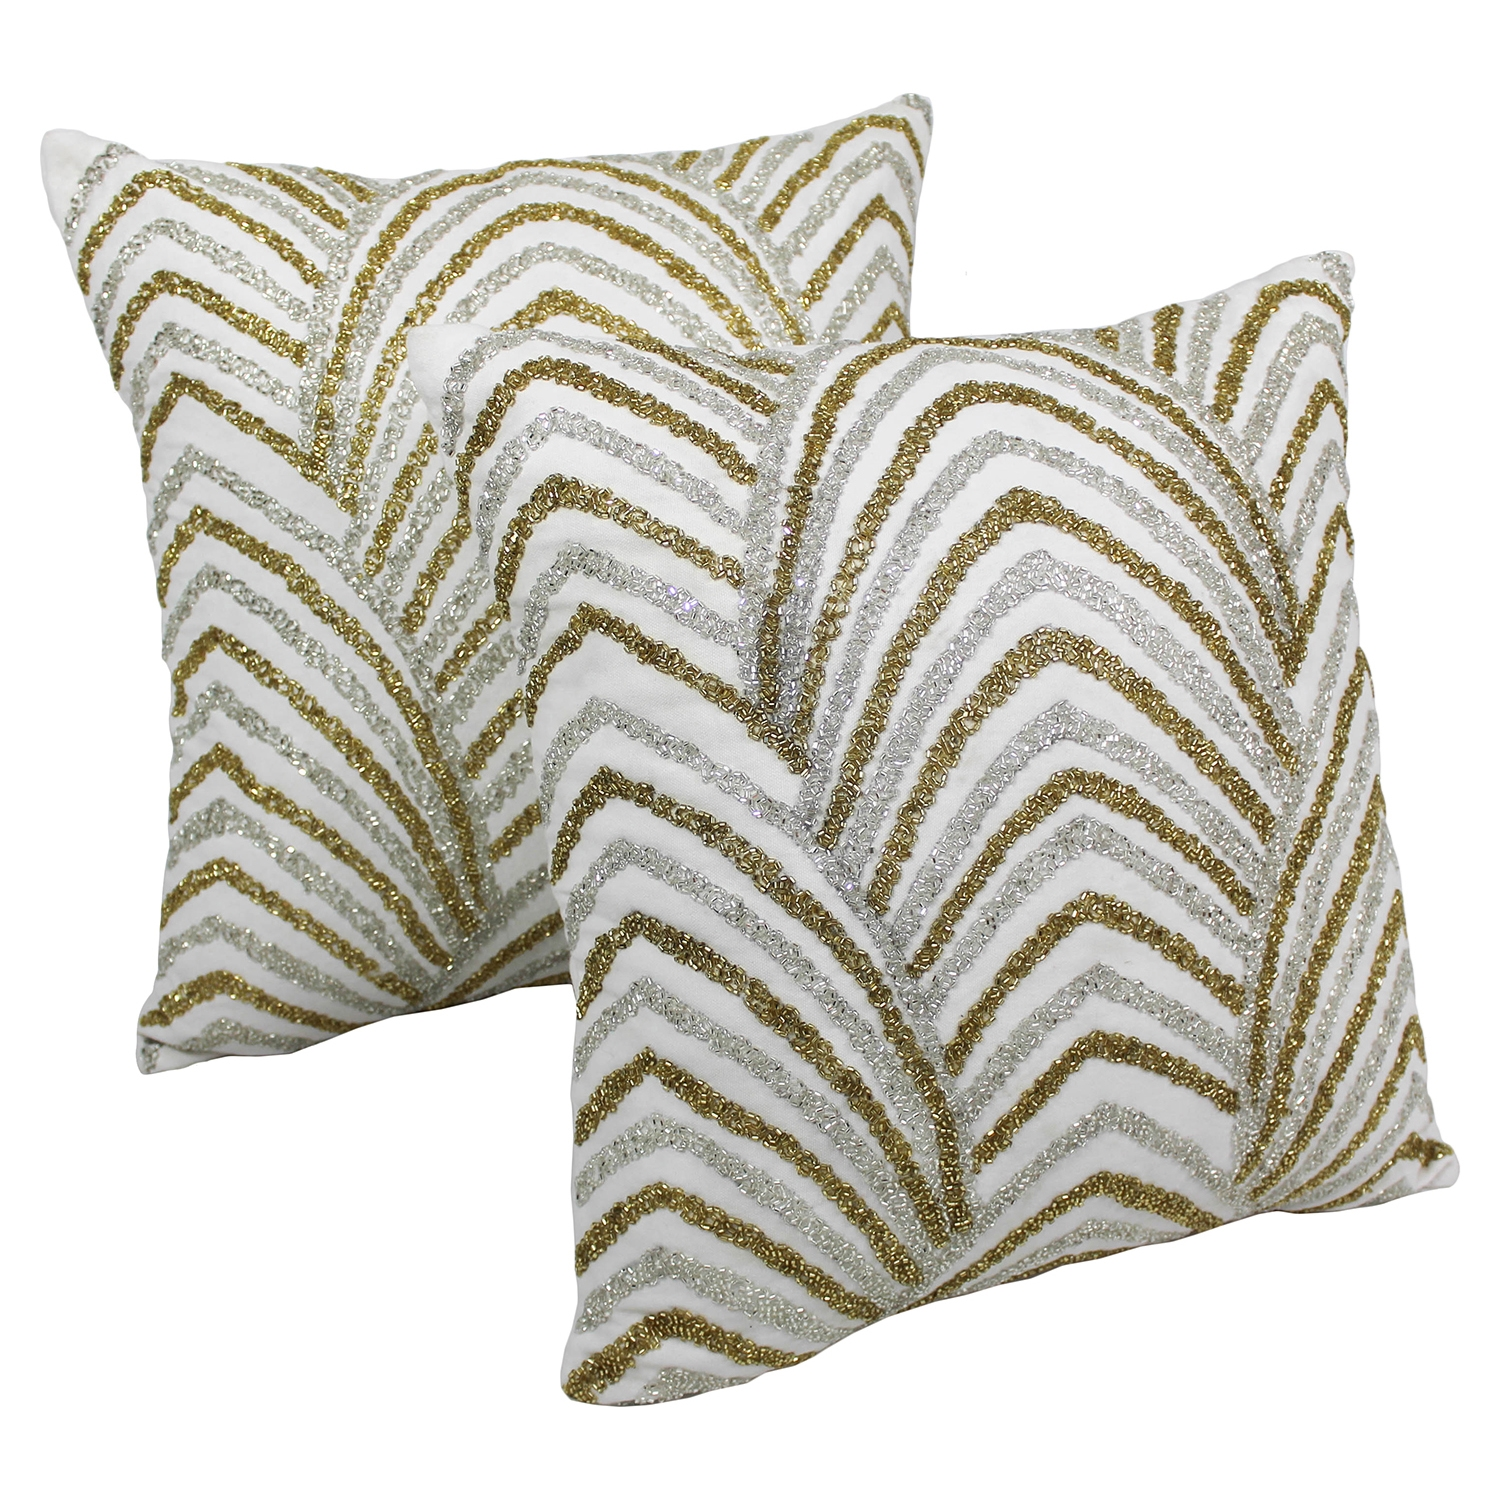 "Arching Fans Beaded 20"" Throw Pillows - Gold/Silver Beads, Ivory Fabric (Set of 2) - BLZ-IN-20728-20-S2"